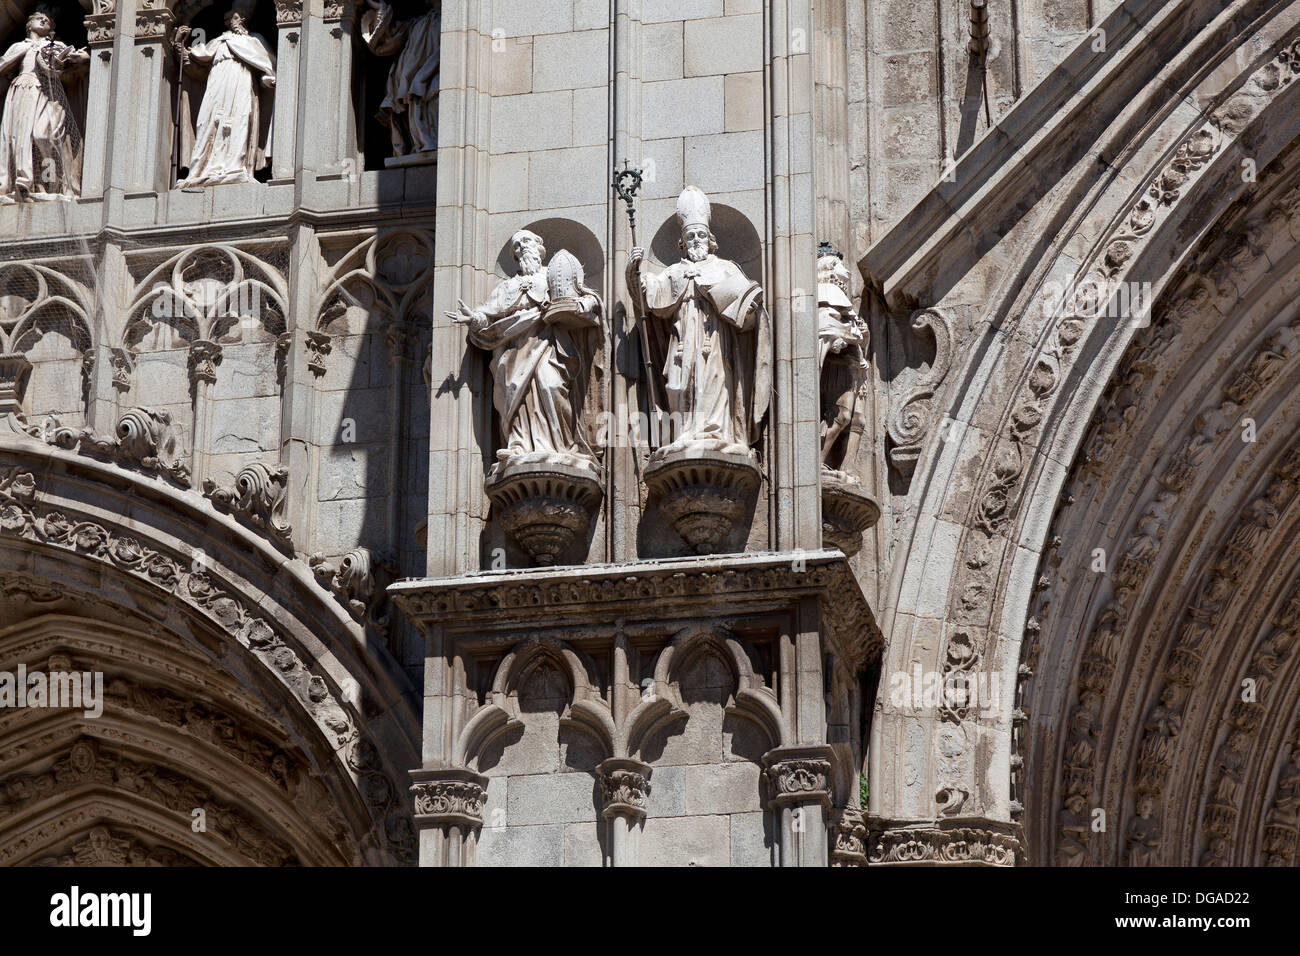 Sculptures at the Primate Cathedral of Saint Mary of Toledo , Spain - Stock Image